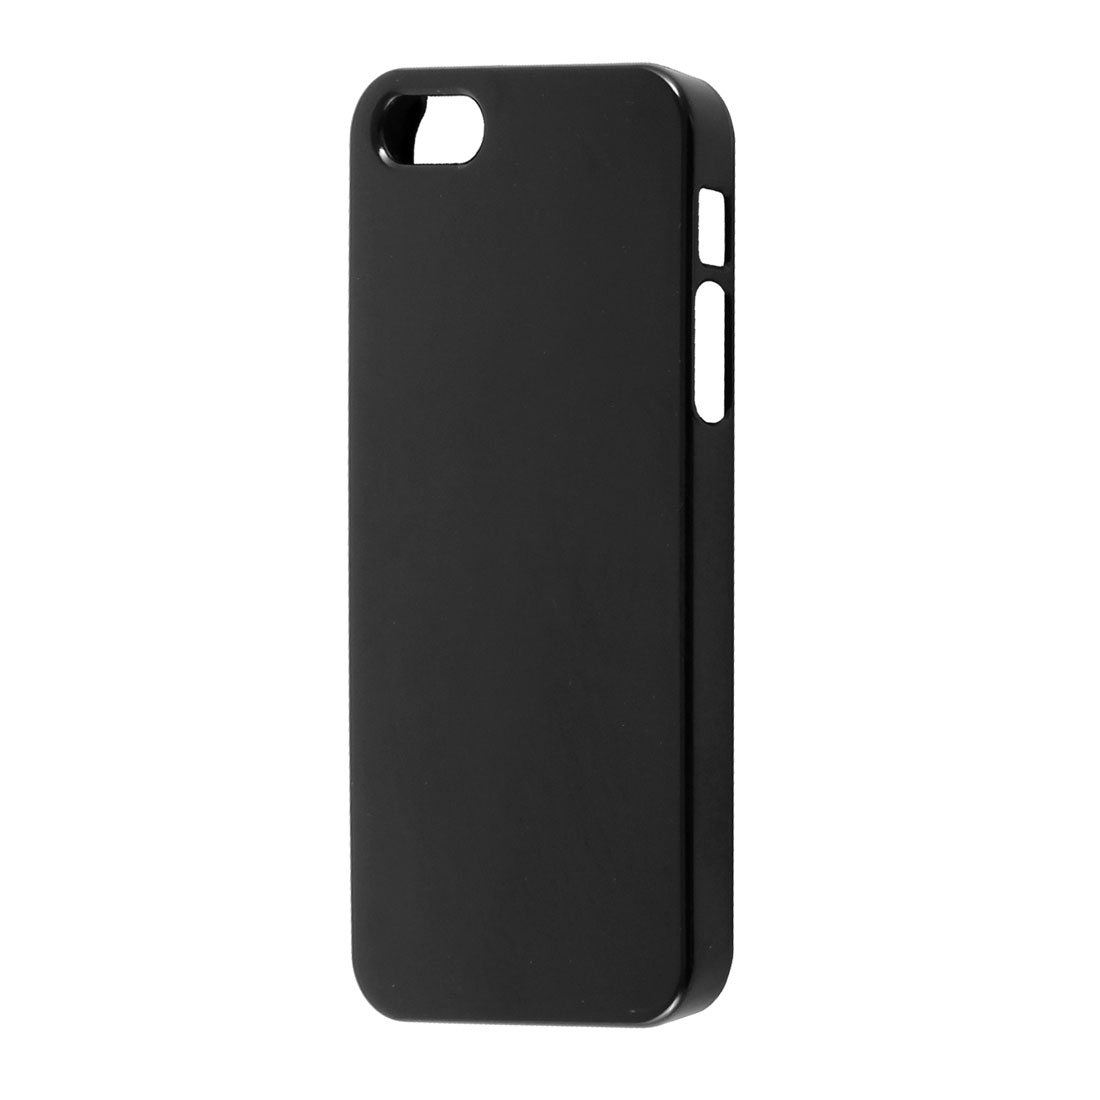 Solid Black Plastic Protector Case Cover for iPhone 5 5G